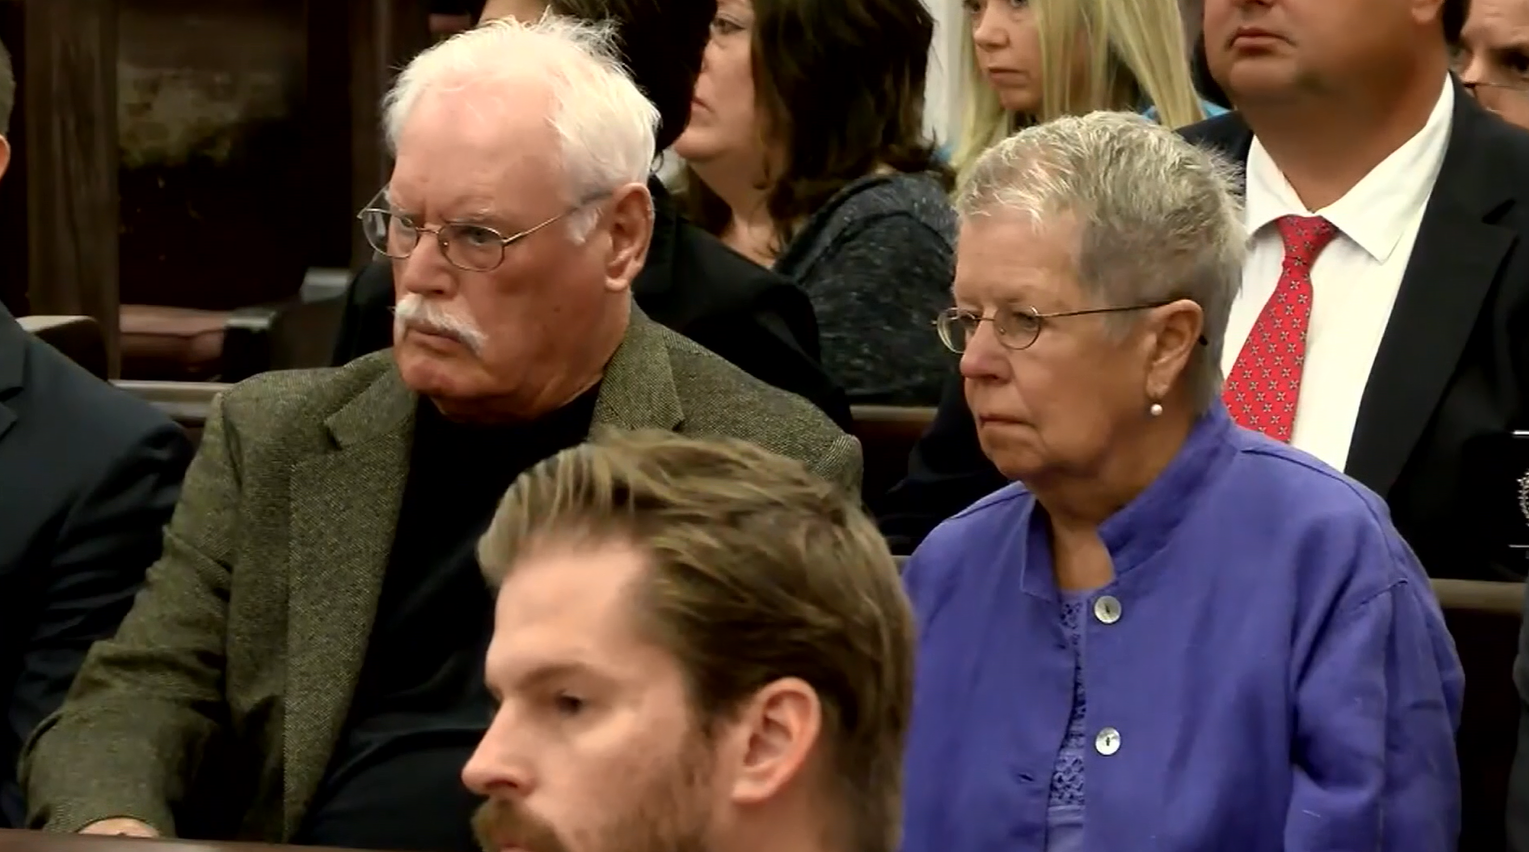 Katherine and Sheila Lyon's parents attend the sentencing for Lloyd Welch in Bedford (Photo: WSET)